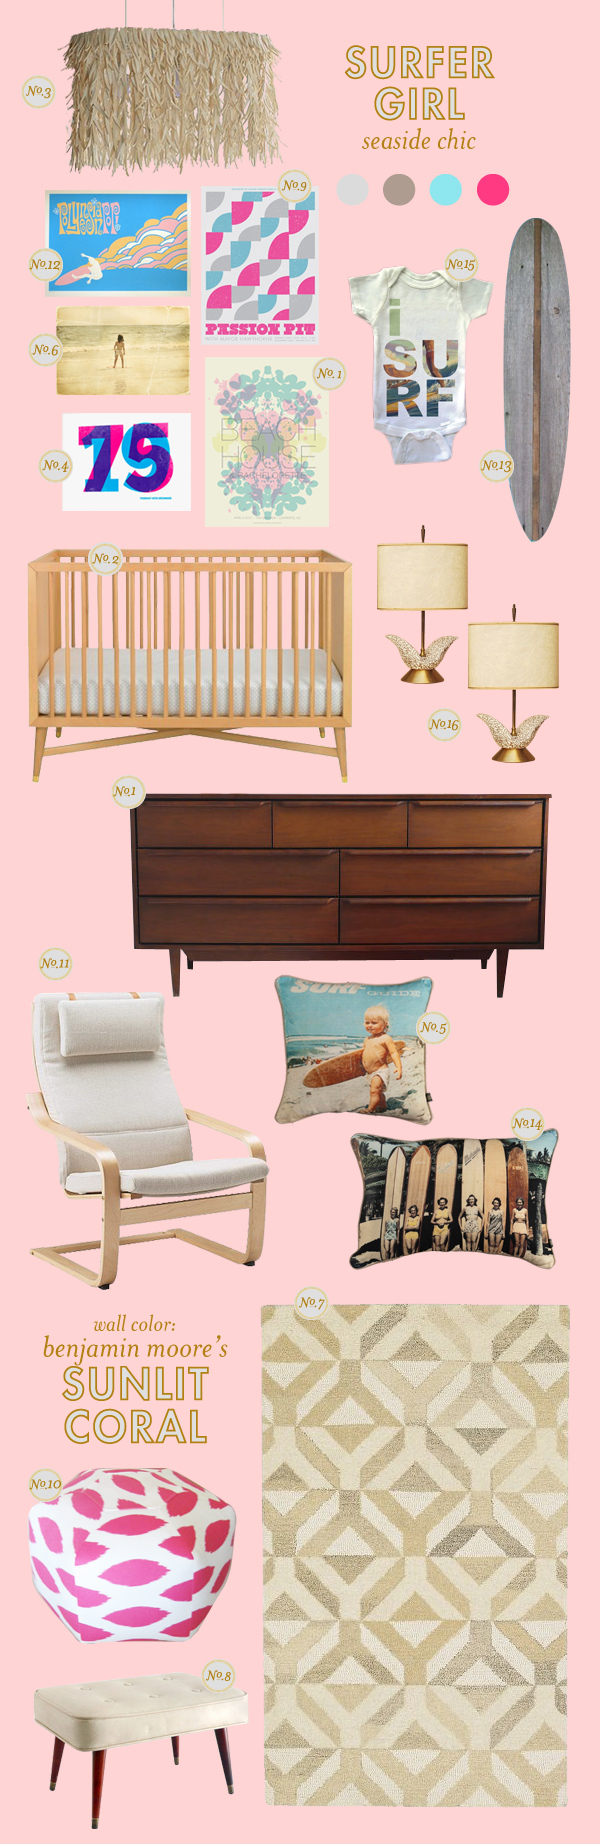 Surfer girl lay baby lay lay baby lay for Surf nursery ideas